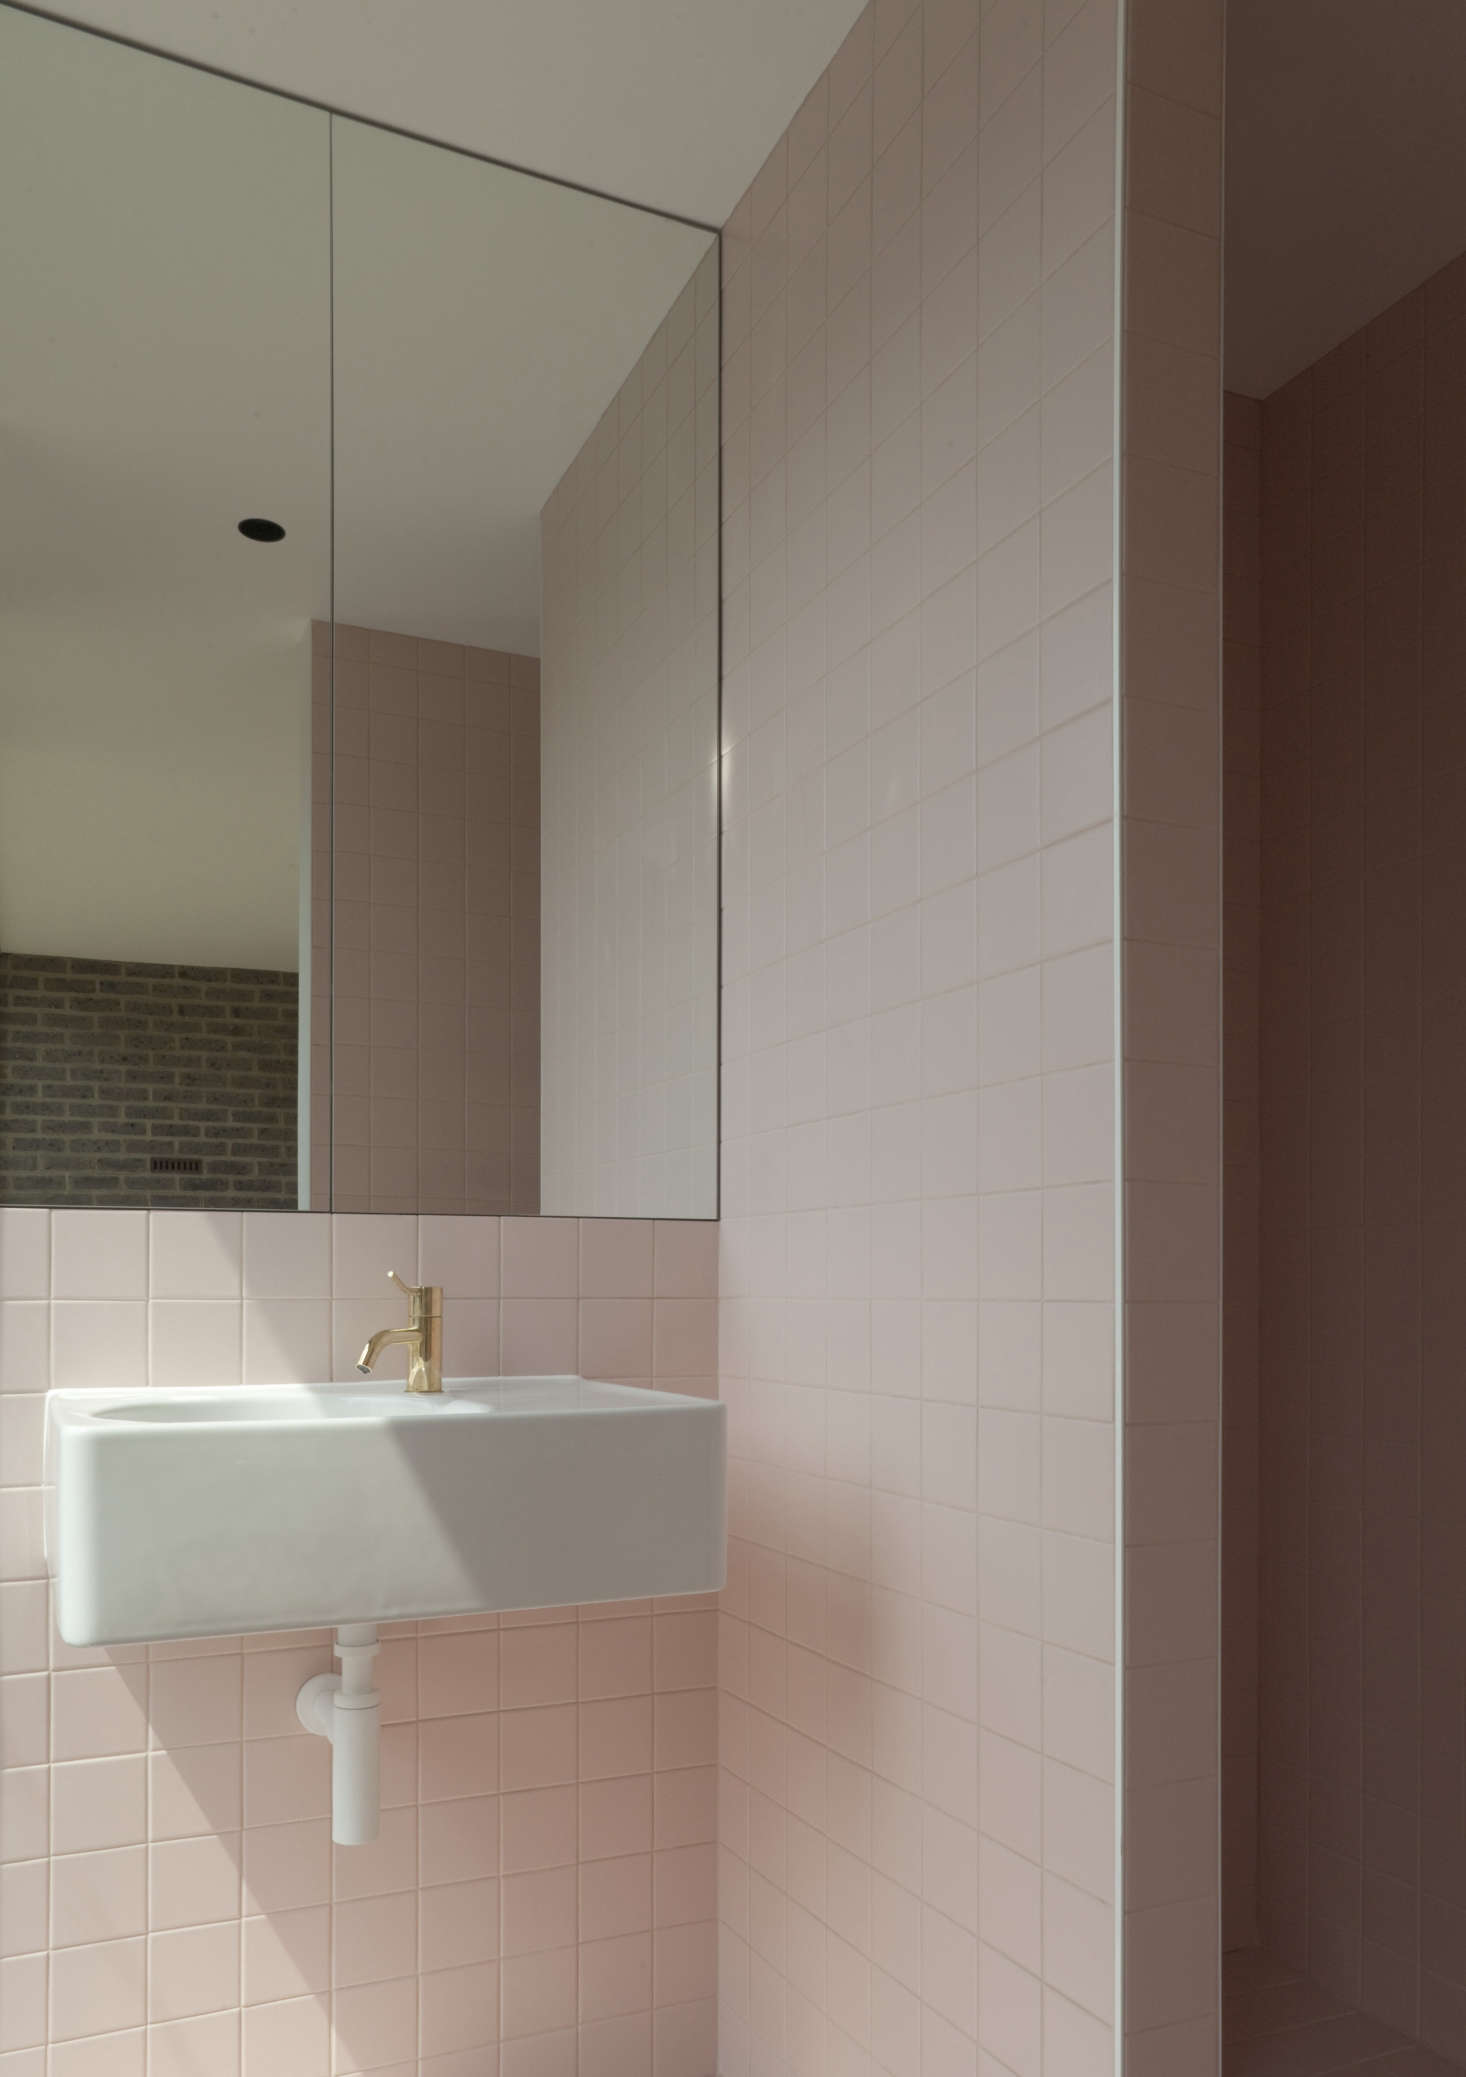 A modern take on a retro trend in this bath, tiled floor to ceiling in subtle pink by London-based Duggan Morris Architects. Photograph byMark Hadden.